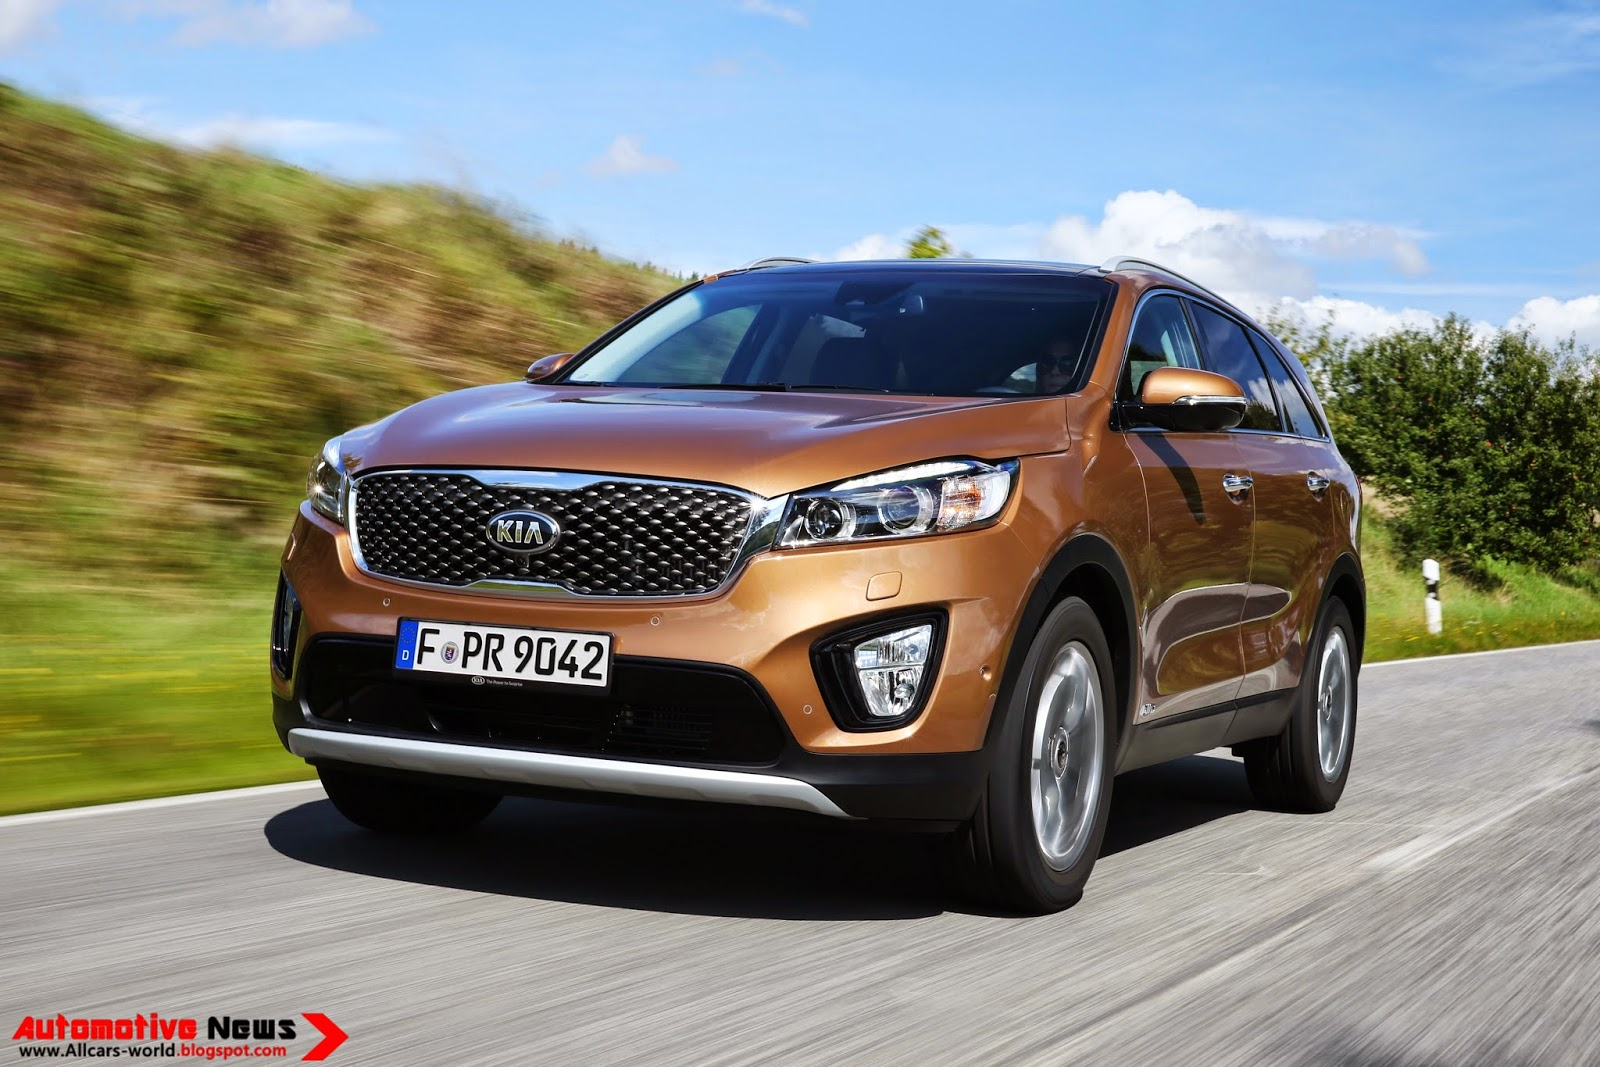 Family vehicles need to ace all the safety ratings and rest assured the 2015 kia sorento has done exactly that